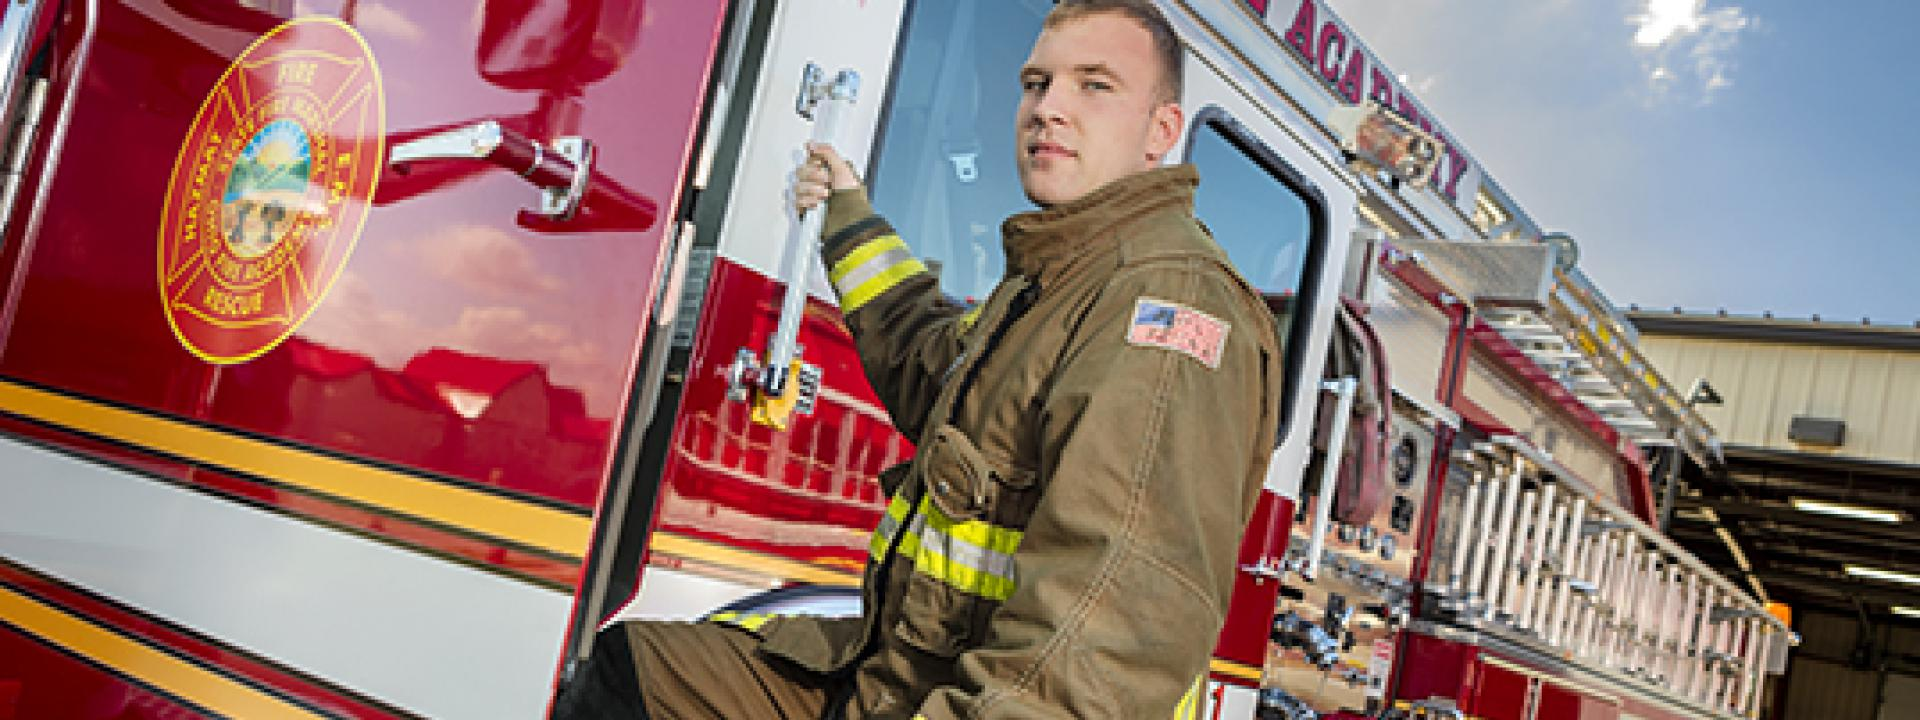 Picture of a fire fighter standing in front of a fire truck